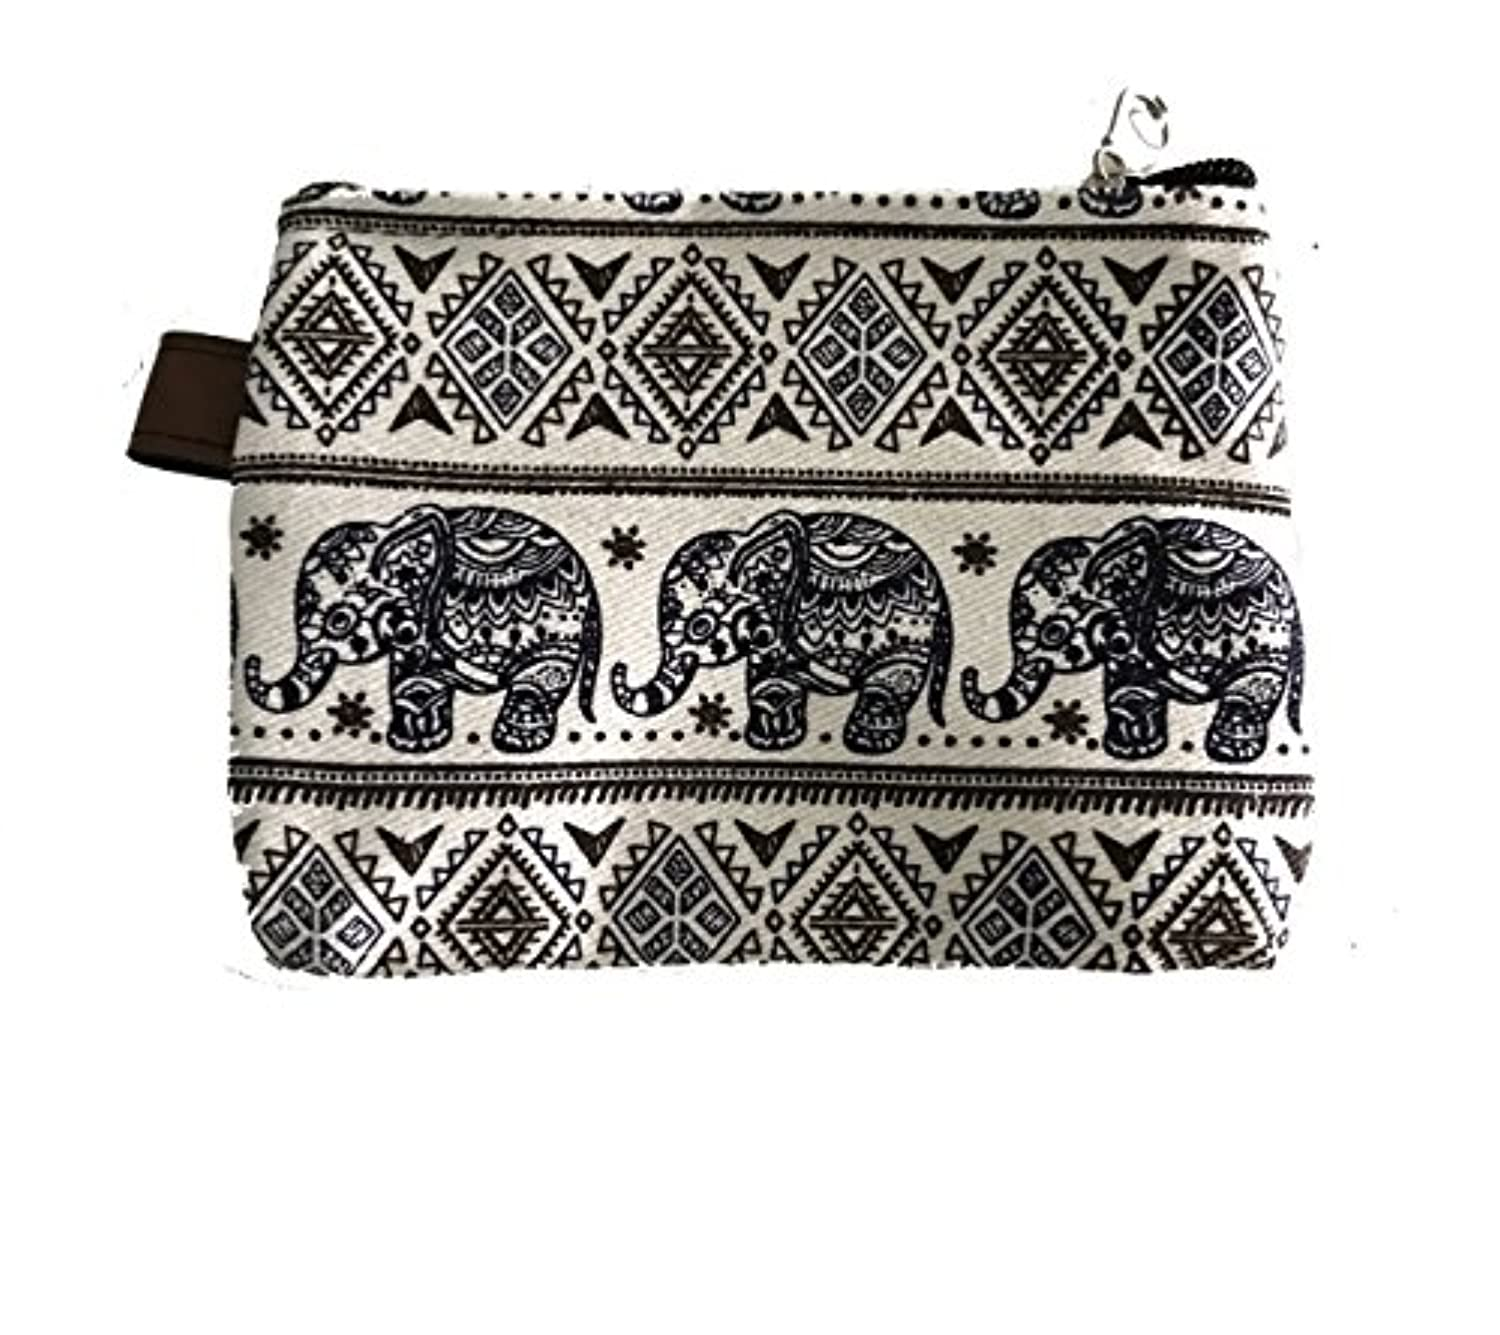 BT Thai Painting Canvas With Elephant Zipper Coin Purse Pouch Products of Thailand.